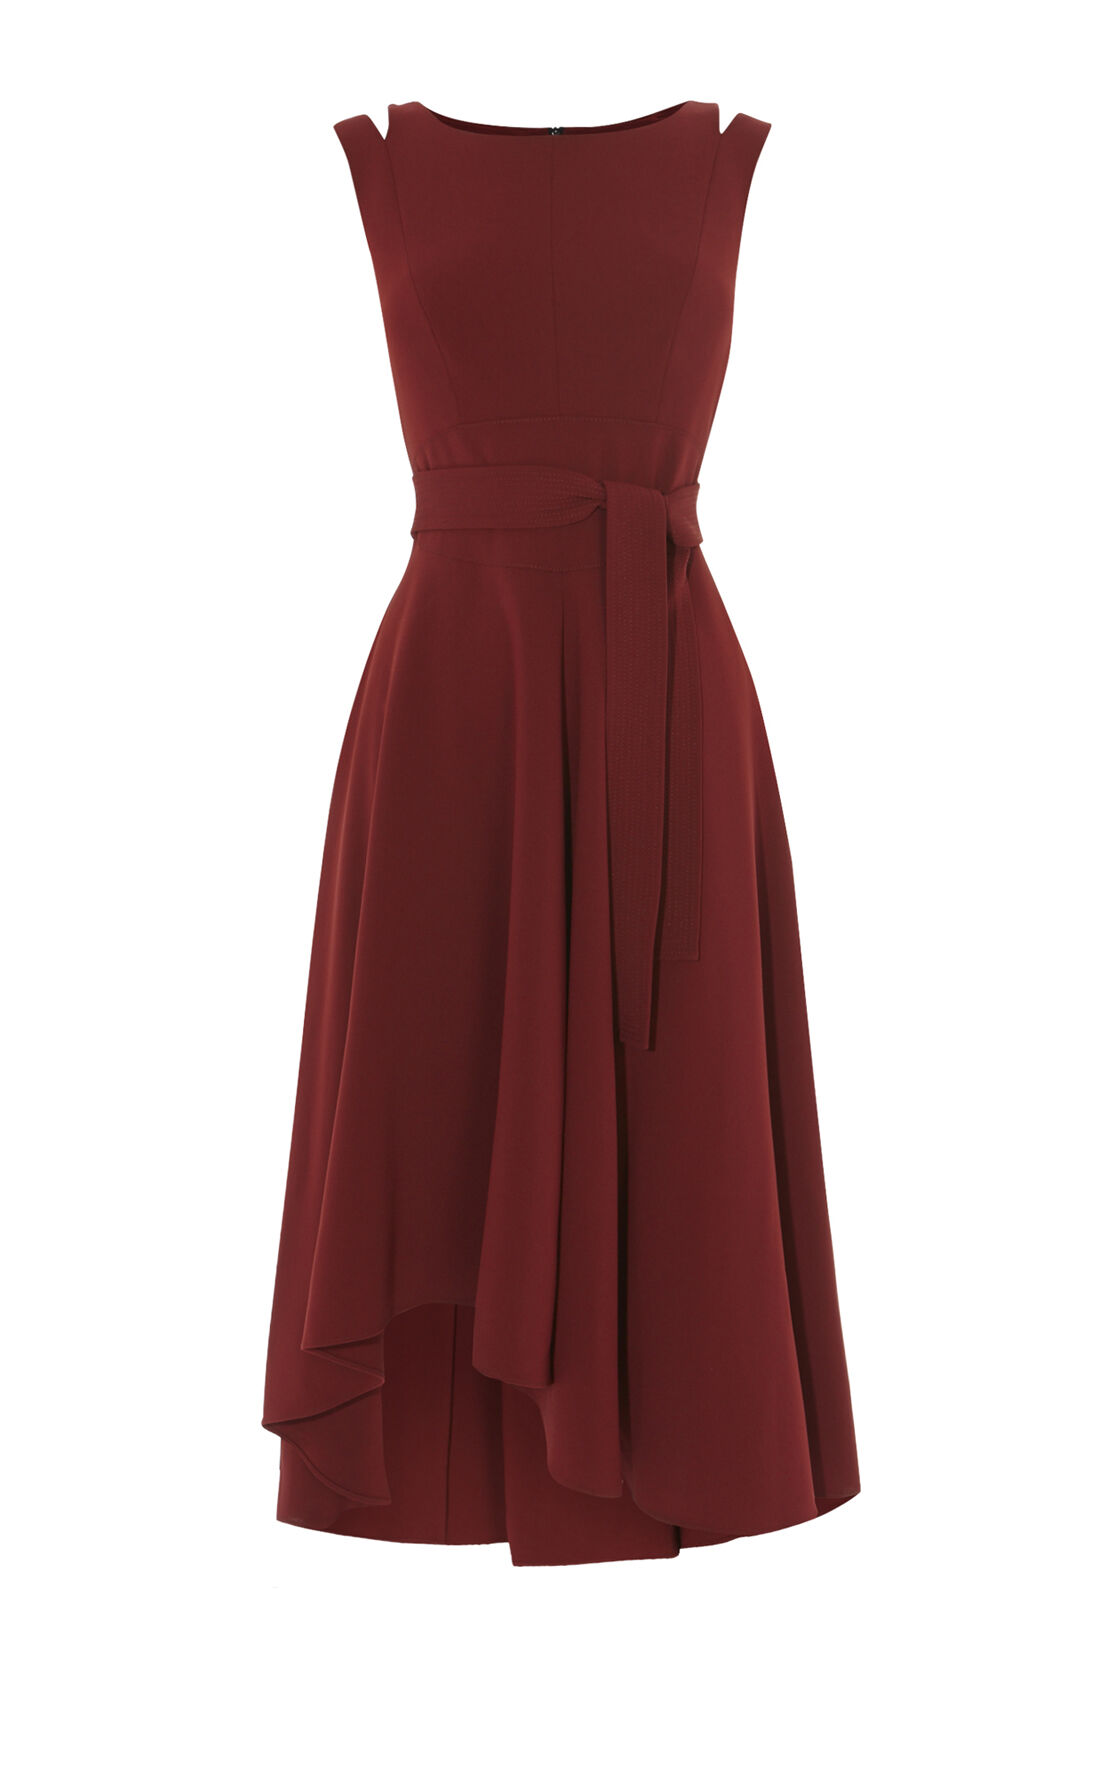 Karen Millen, CREPE MIDI DRESS Burgundy 0